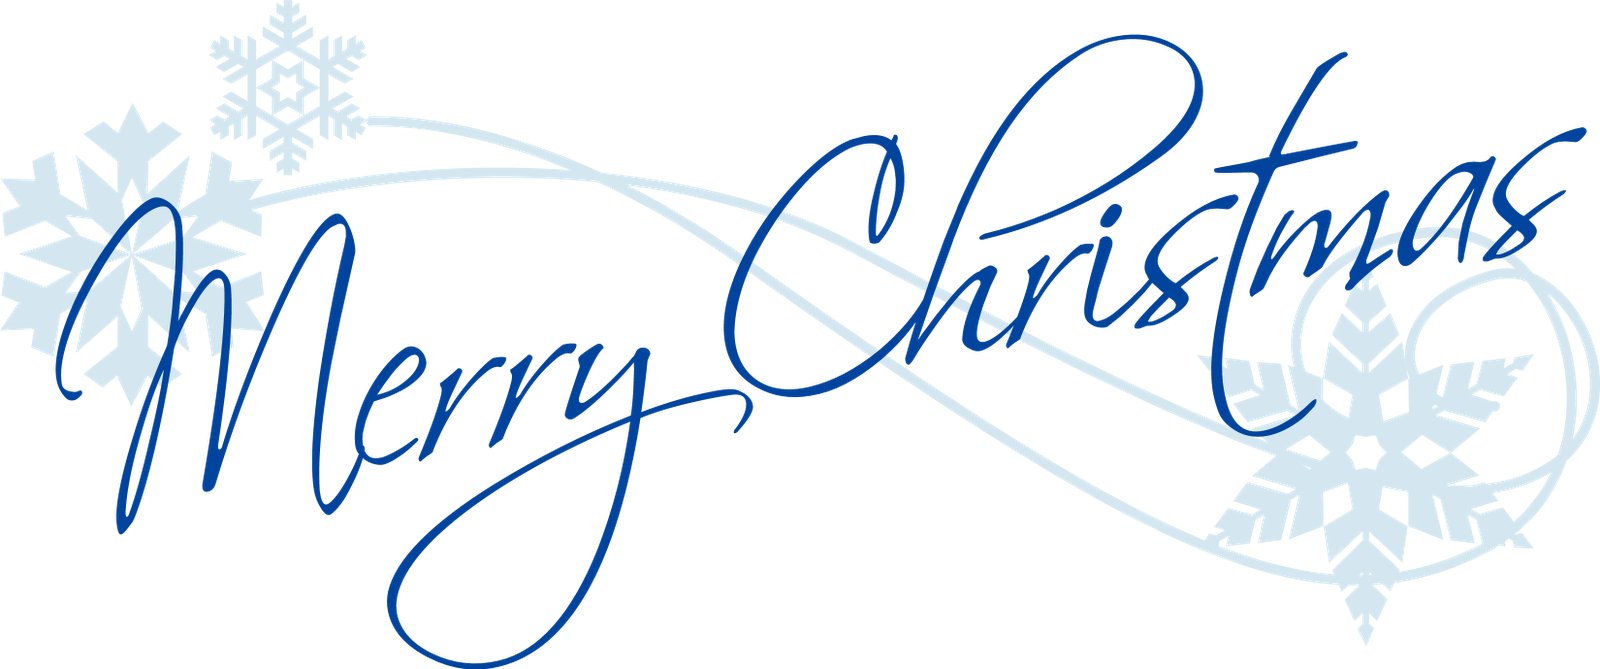 One Line Text Art Cat : Image merry christmas animal jam clans wiki